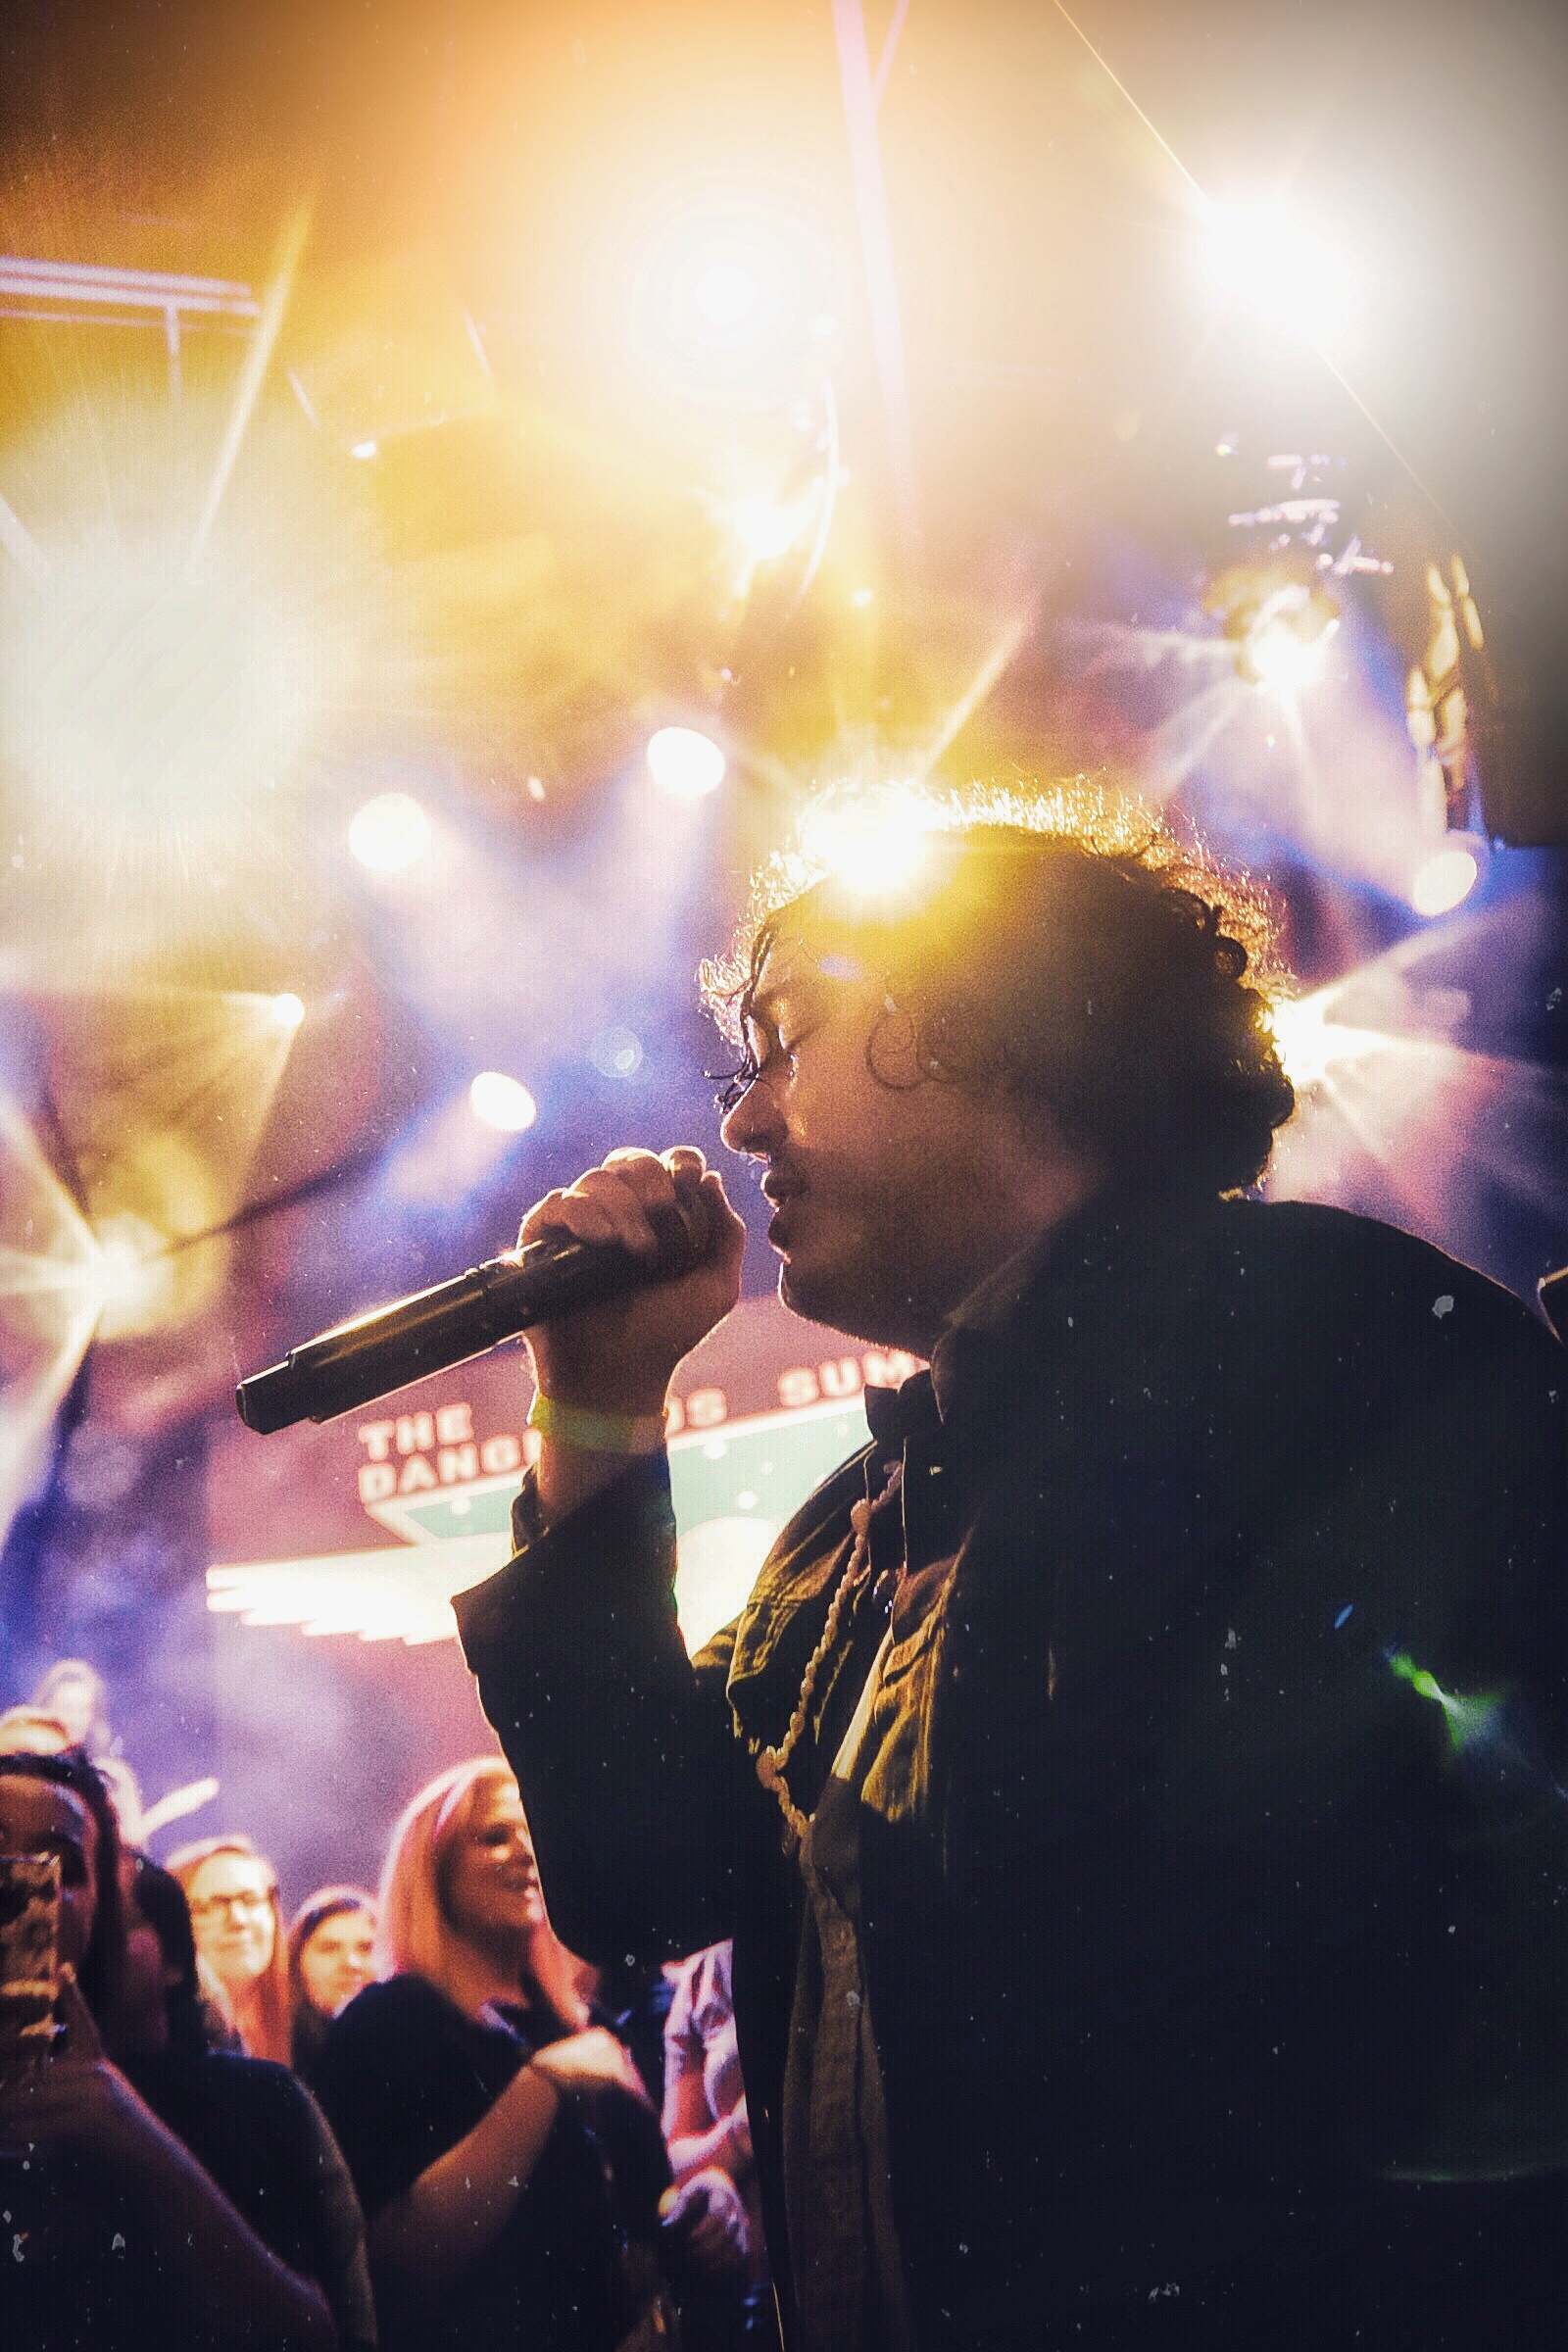 AJ Perdomo of The Dangerous Summer explores the crowd at the Cowan in Nashville, TN.